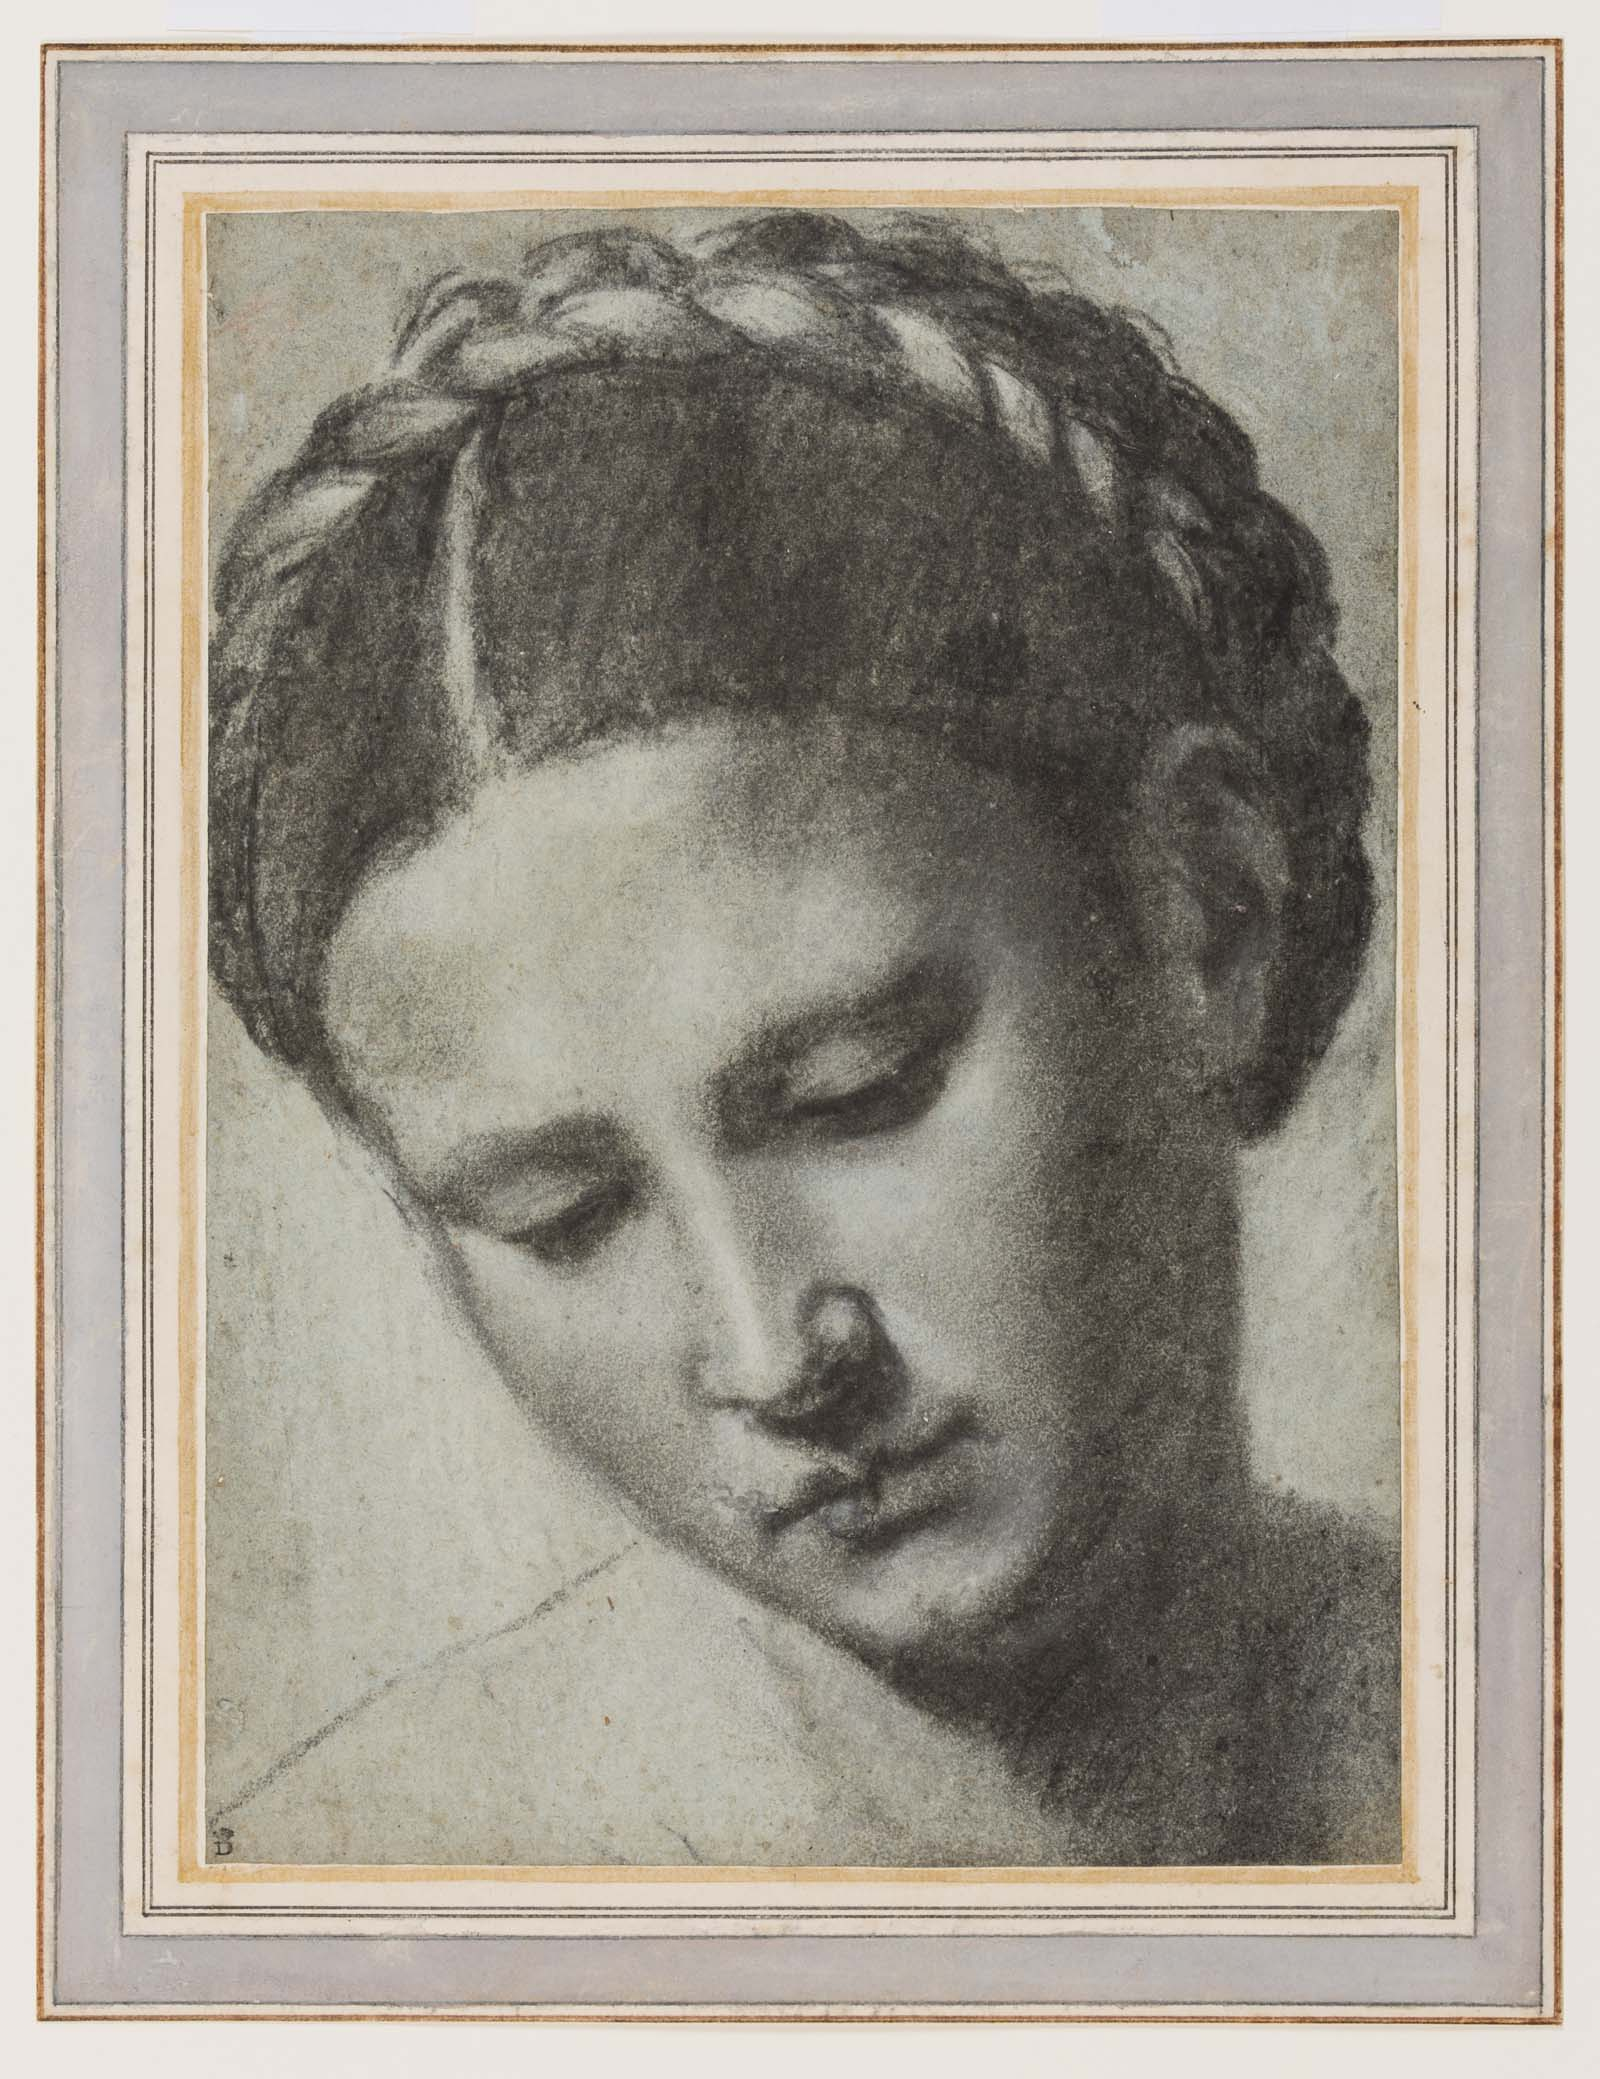 pencil portrait of a woman with braided hair